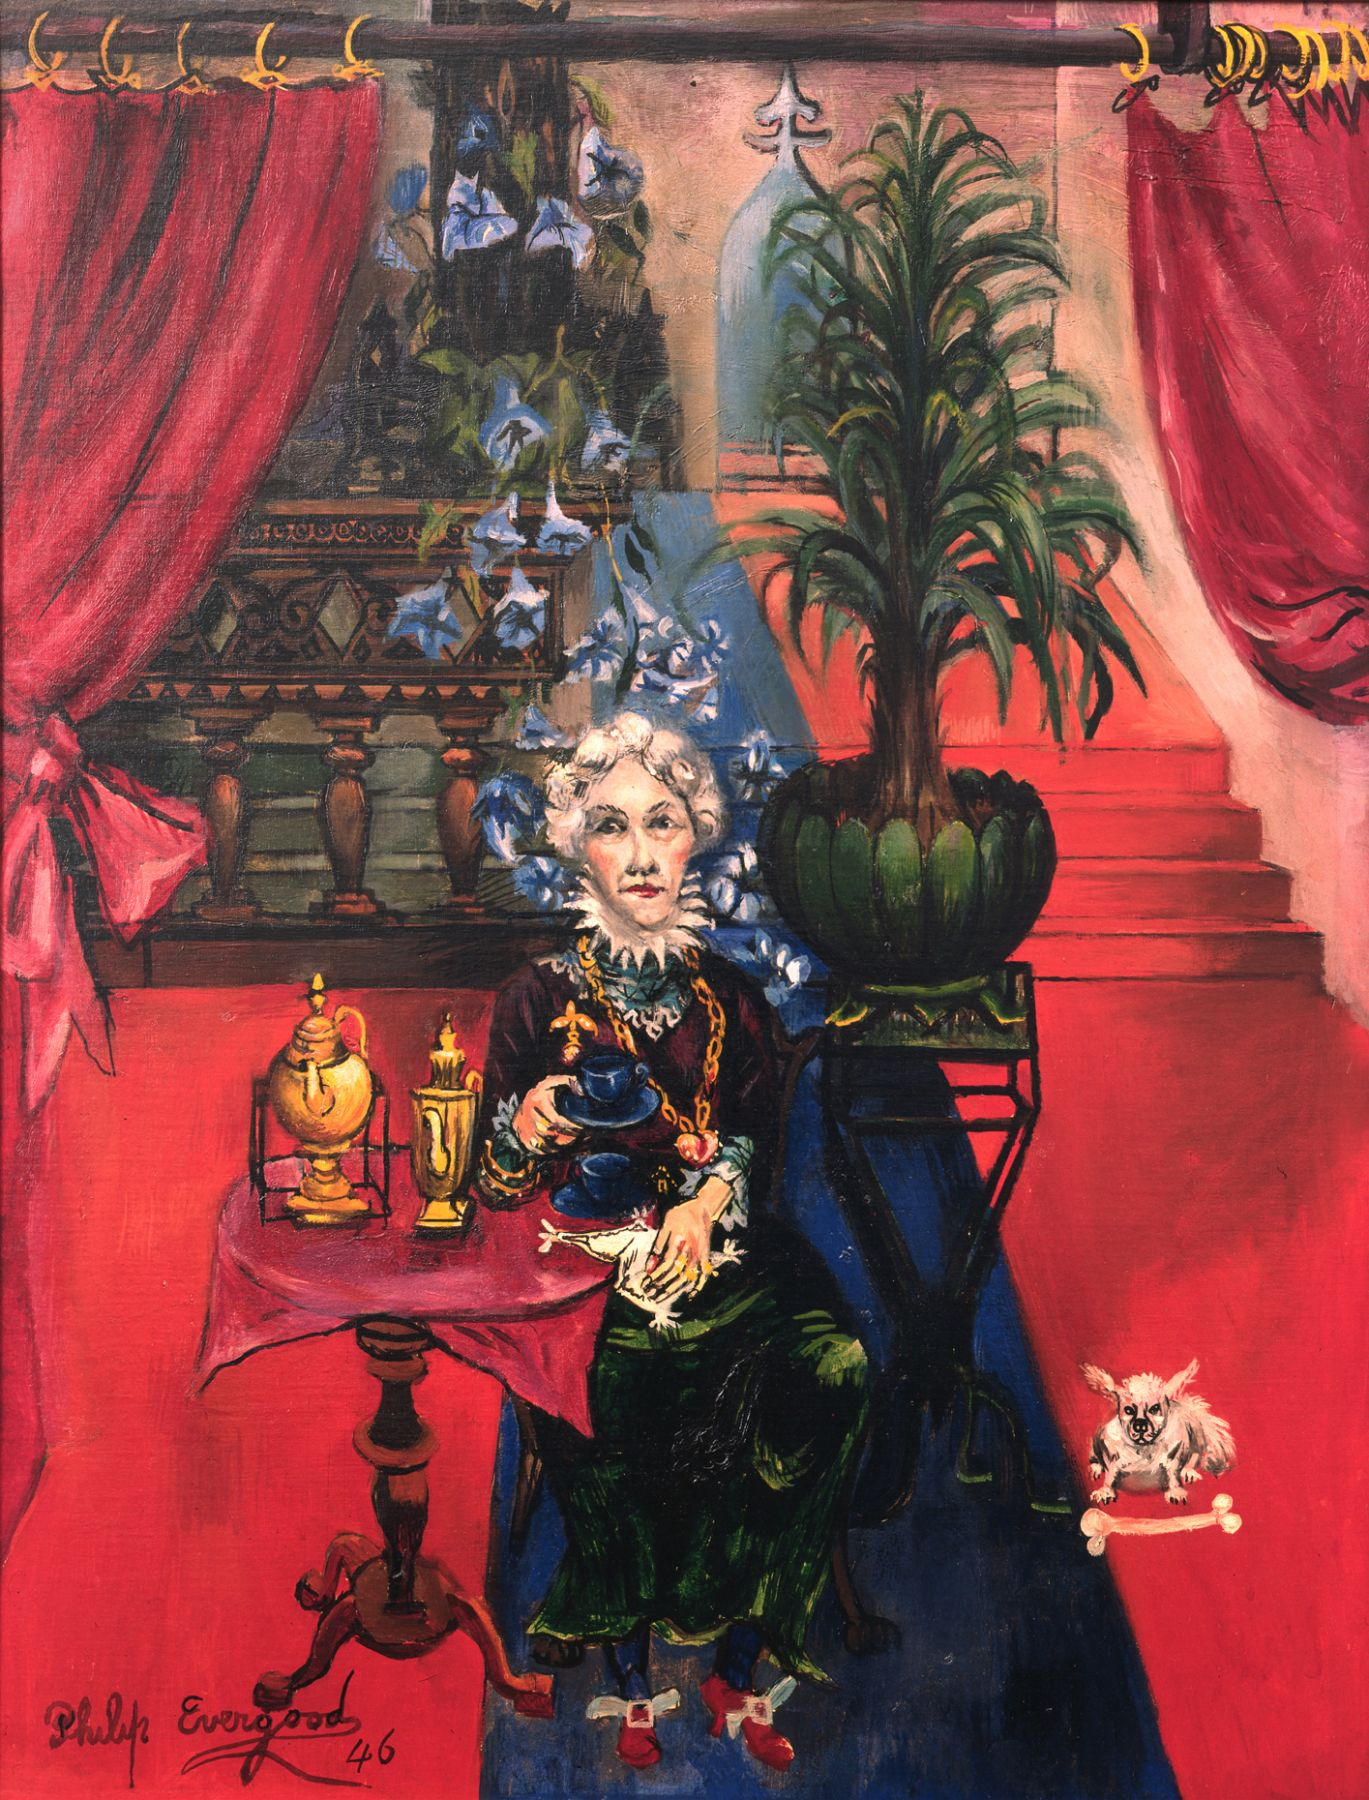 philip evergood, A Cup of Tea, 1946, oil on canvas, 33 x 25 1/2 inches